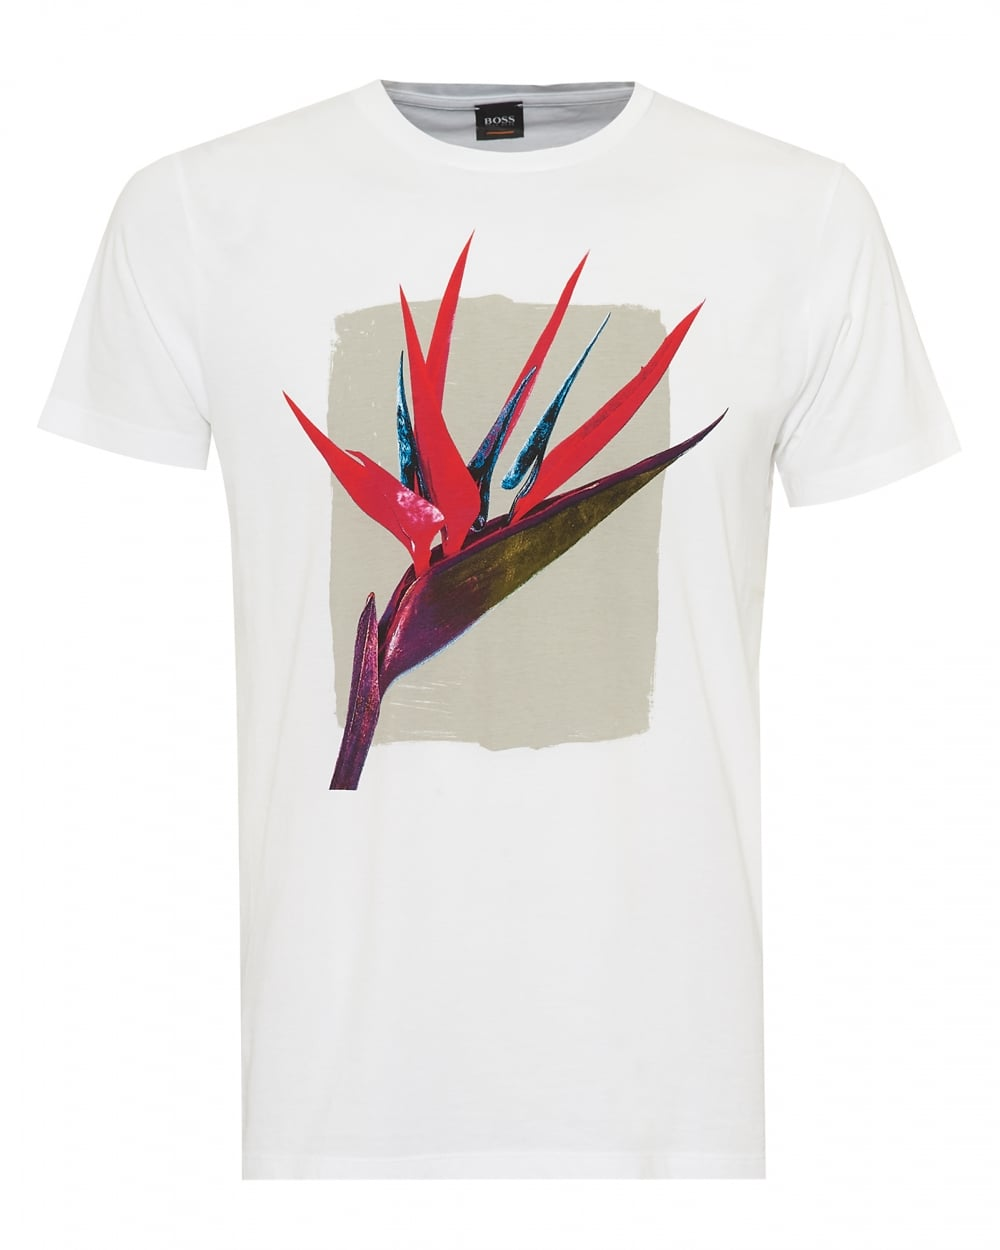 Mens Timen 2 T-Shirt, Tropical Flower Graphic White Tee